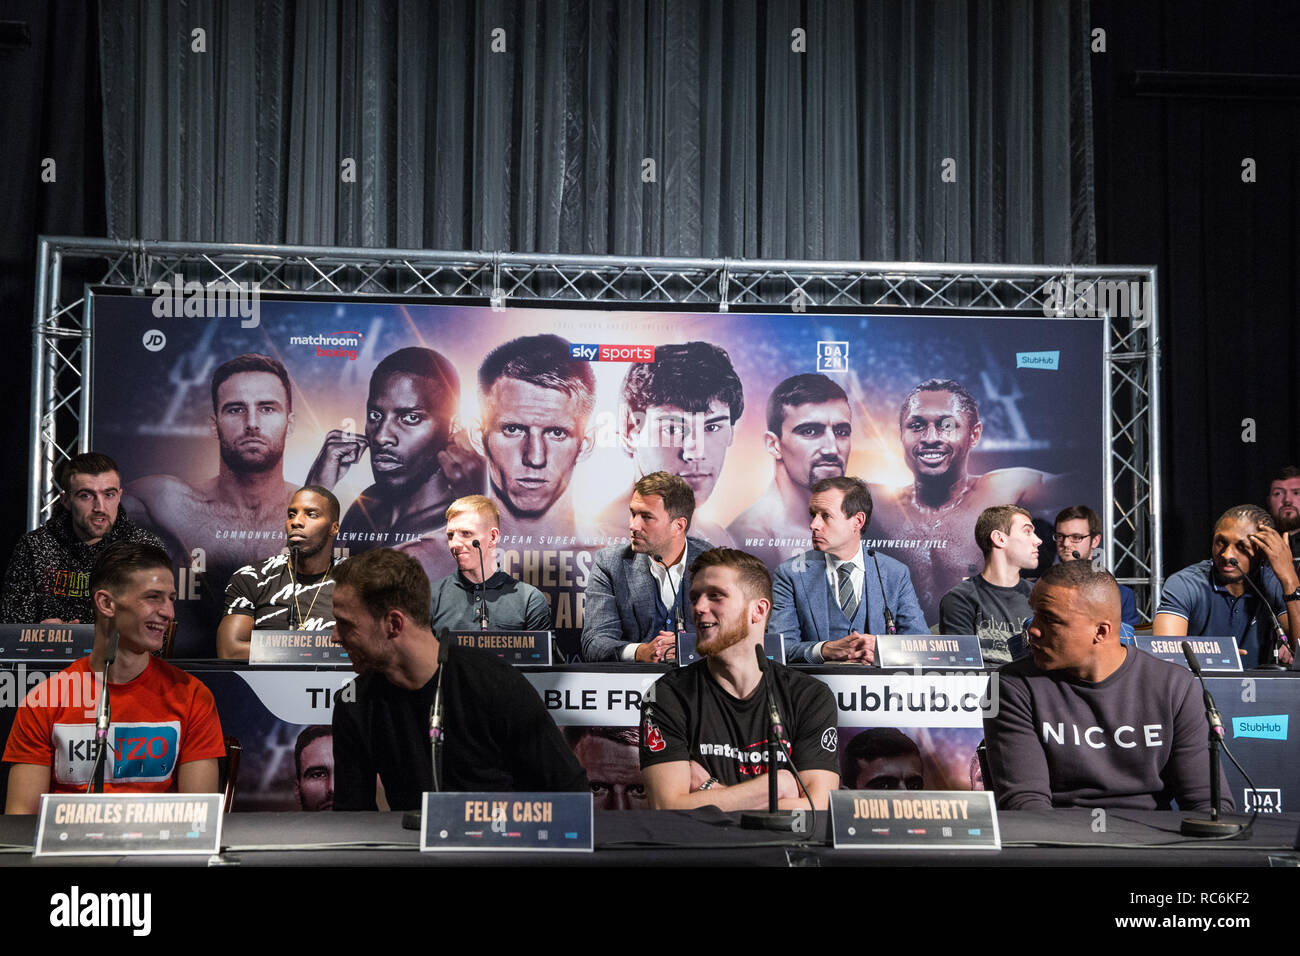 London, UK. 14th January, 2019. Surrey Light Heavyweight Jake Ball (rear left) appears at the press conference for a Matchroom Boxing card at the 02 on 2nd February where he will fight Craig Richards in a 10 X 3 mins Light-Heavyweight contest. Credit: Mark Kerrison/Alamy Live News - Stock Image